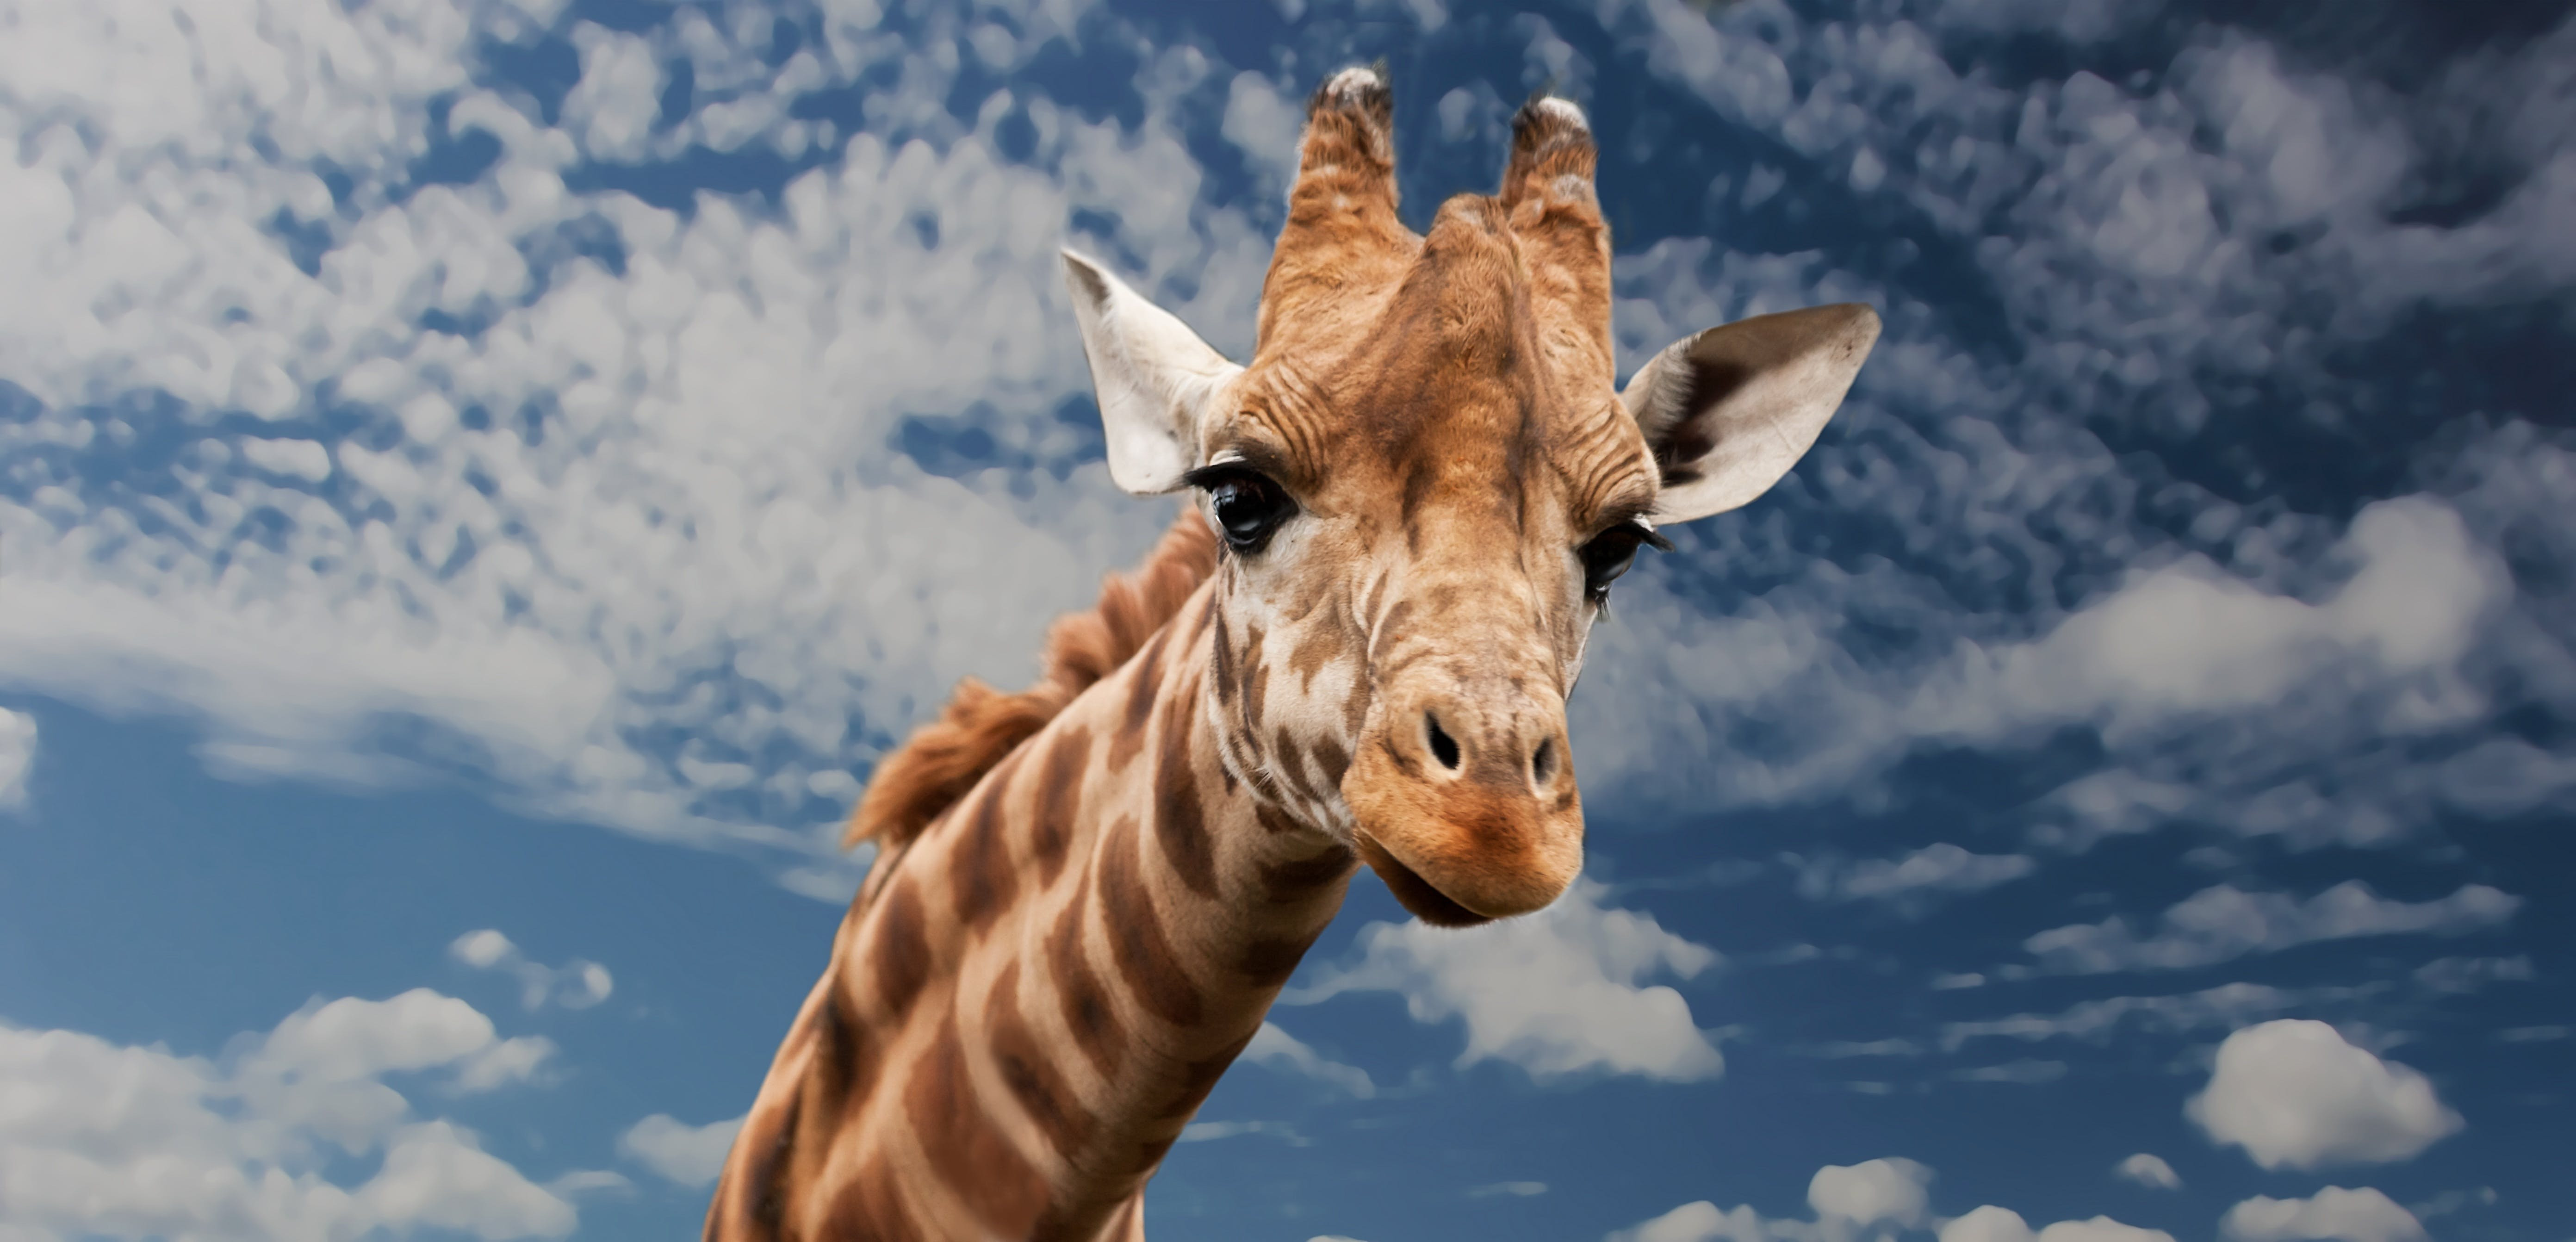 Brown Beige and White Giraffe Under White Clouds